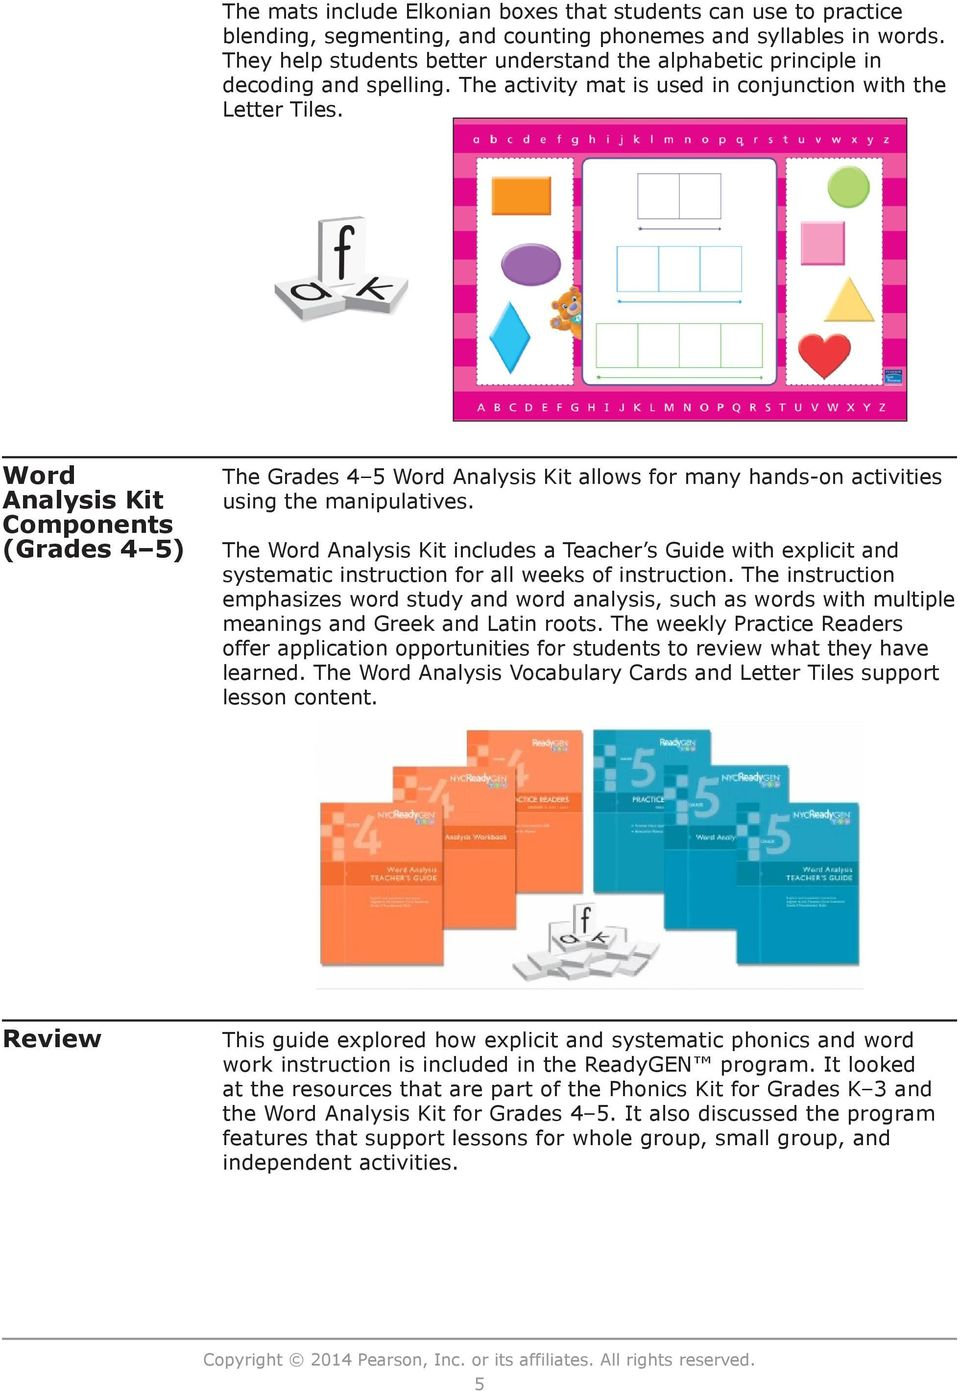 Word Analysis Kit Components (Grades 4 5) The Grades 4 5 Word Analysis Kit allows for many hands-on activities using the manipulatives.